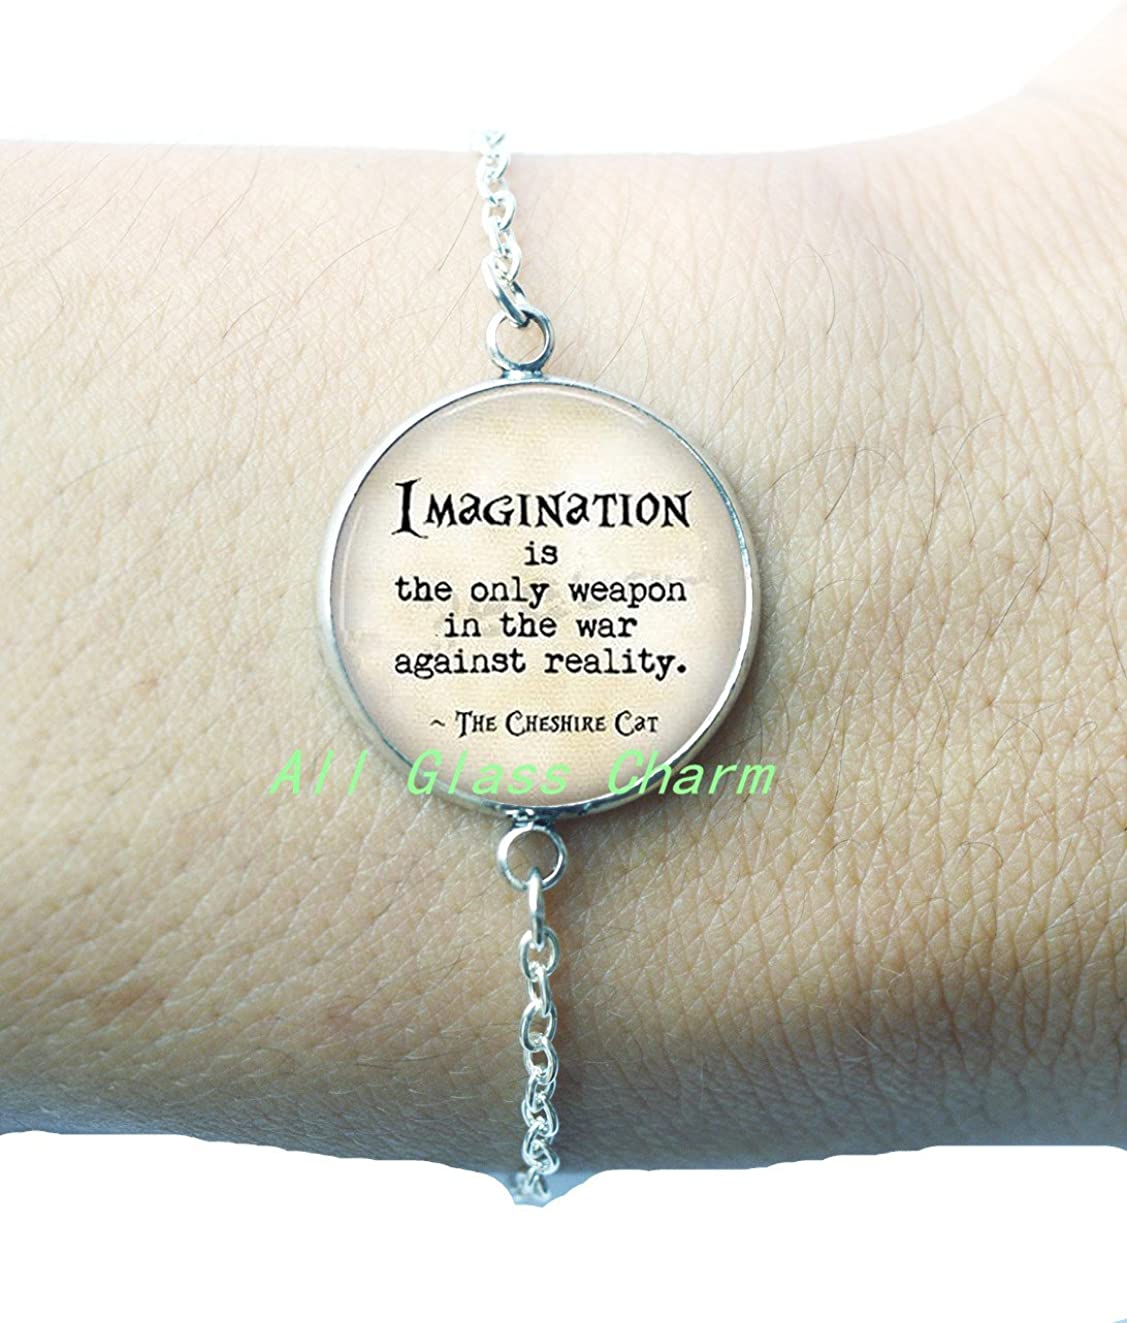 Charming Locket Necklace,Beautiful Locket Necklace,Wonderland Quote Imagination is the only weapon in the war against reality Cat Quote White Rabbit Charm